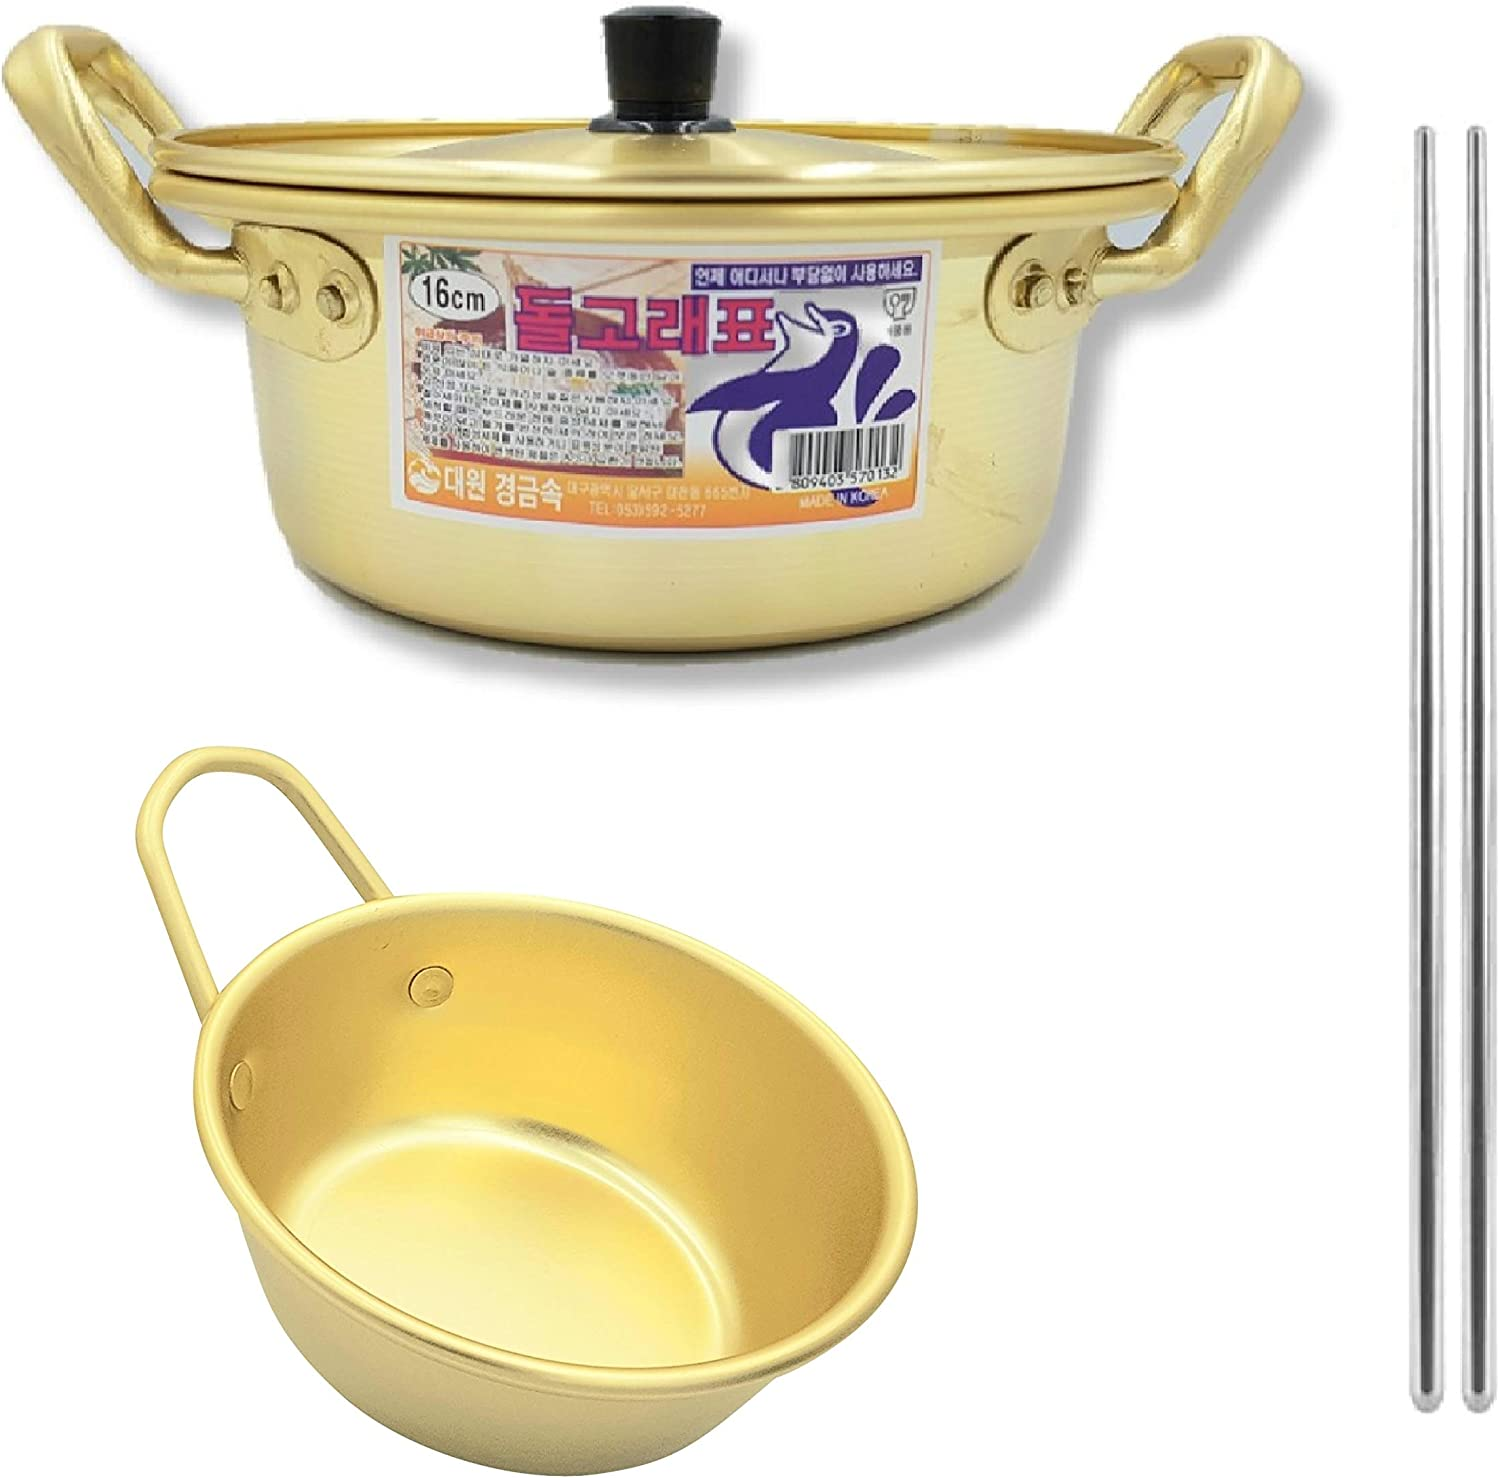 Rapid Noodle Cooker Ramen Noodles Pot 6.3-inch Korean Traditional Wine Bowl 4.3-inch Stainless Chopsticks 1 pair Pack of 3 Made in Korea (Type A)